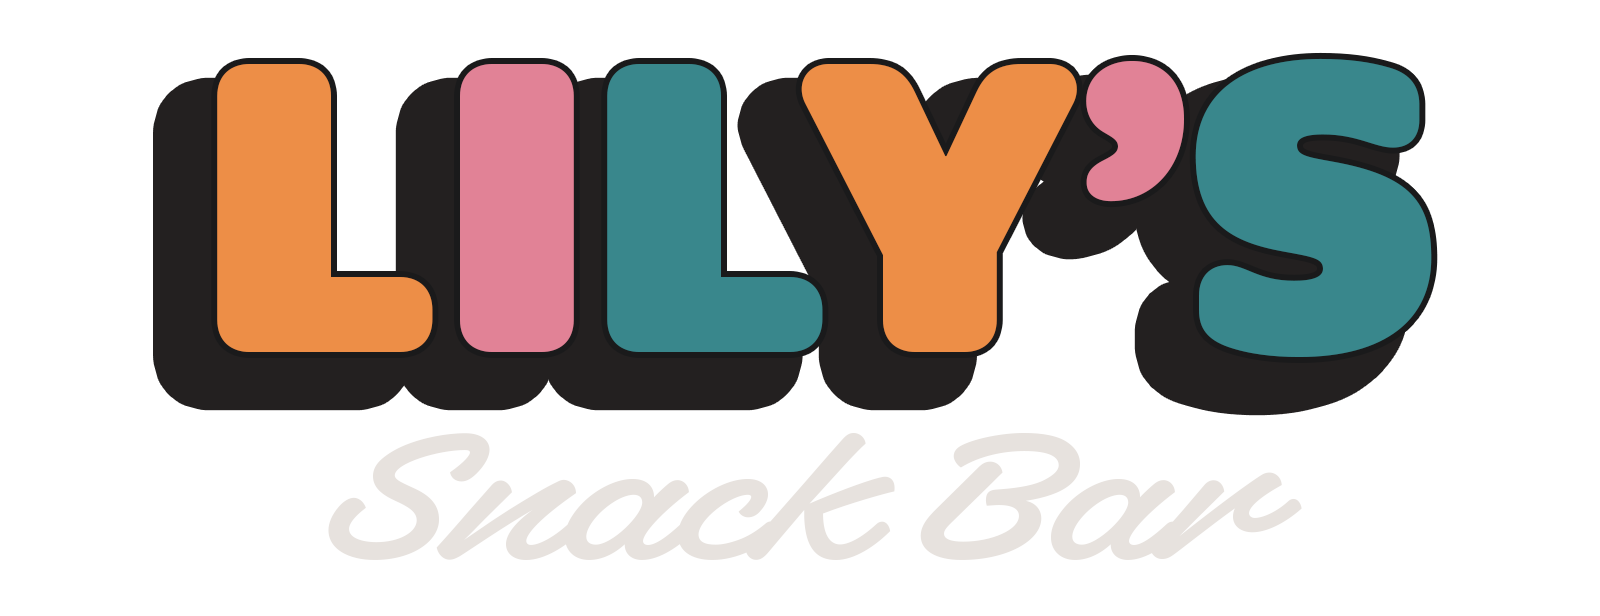 Lily's Snack Bar